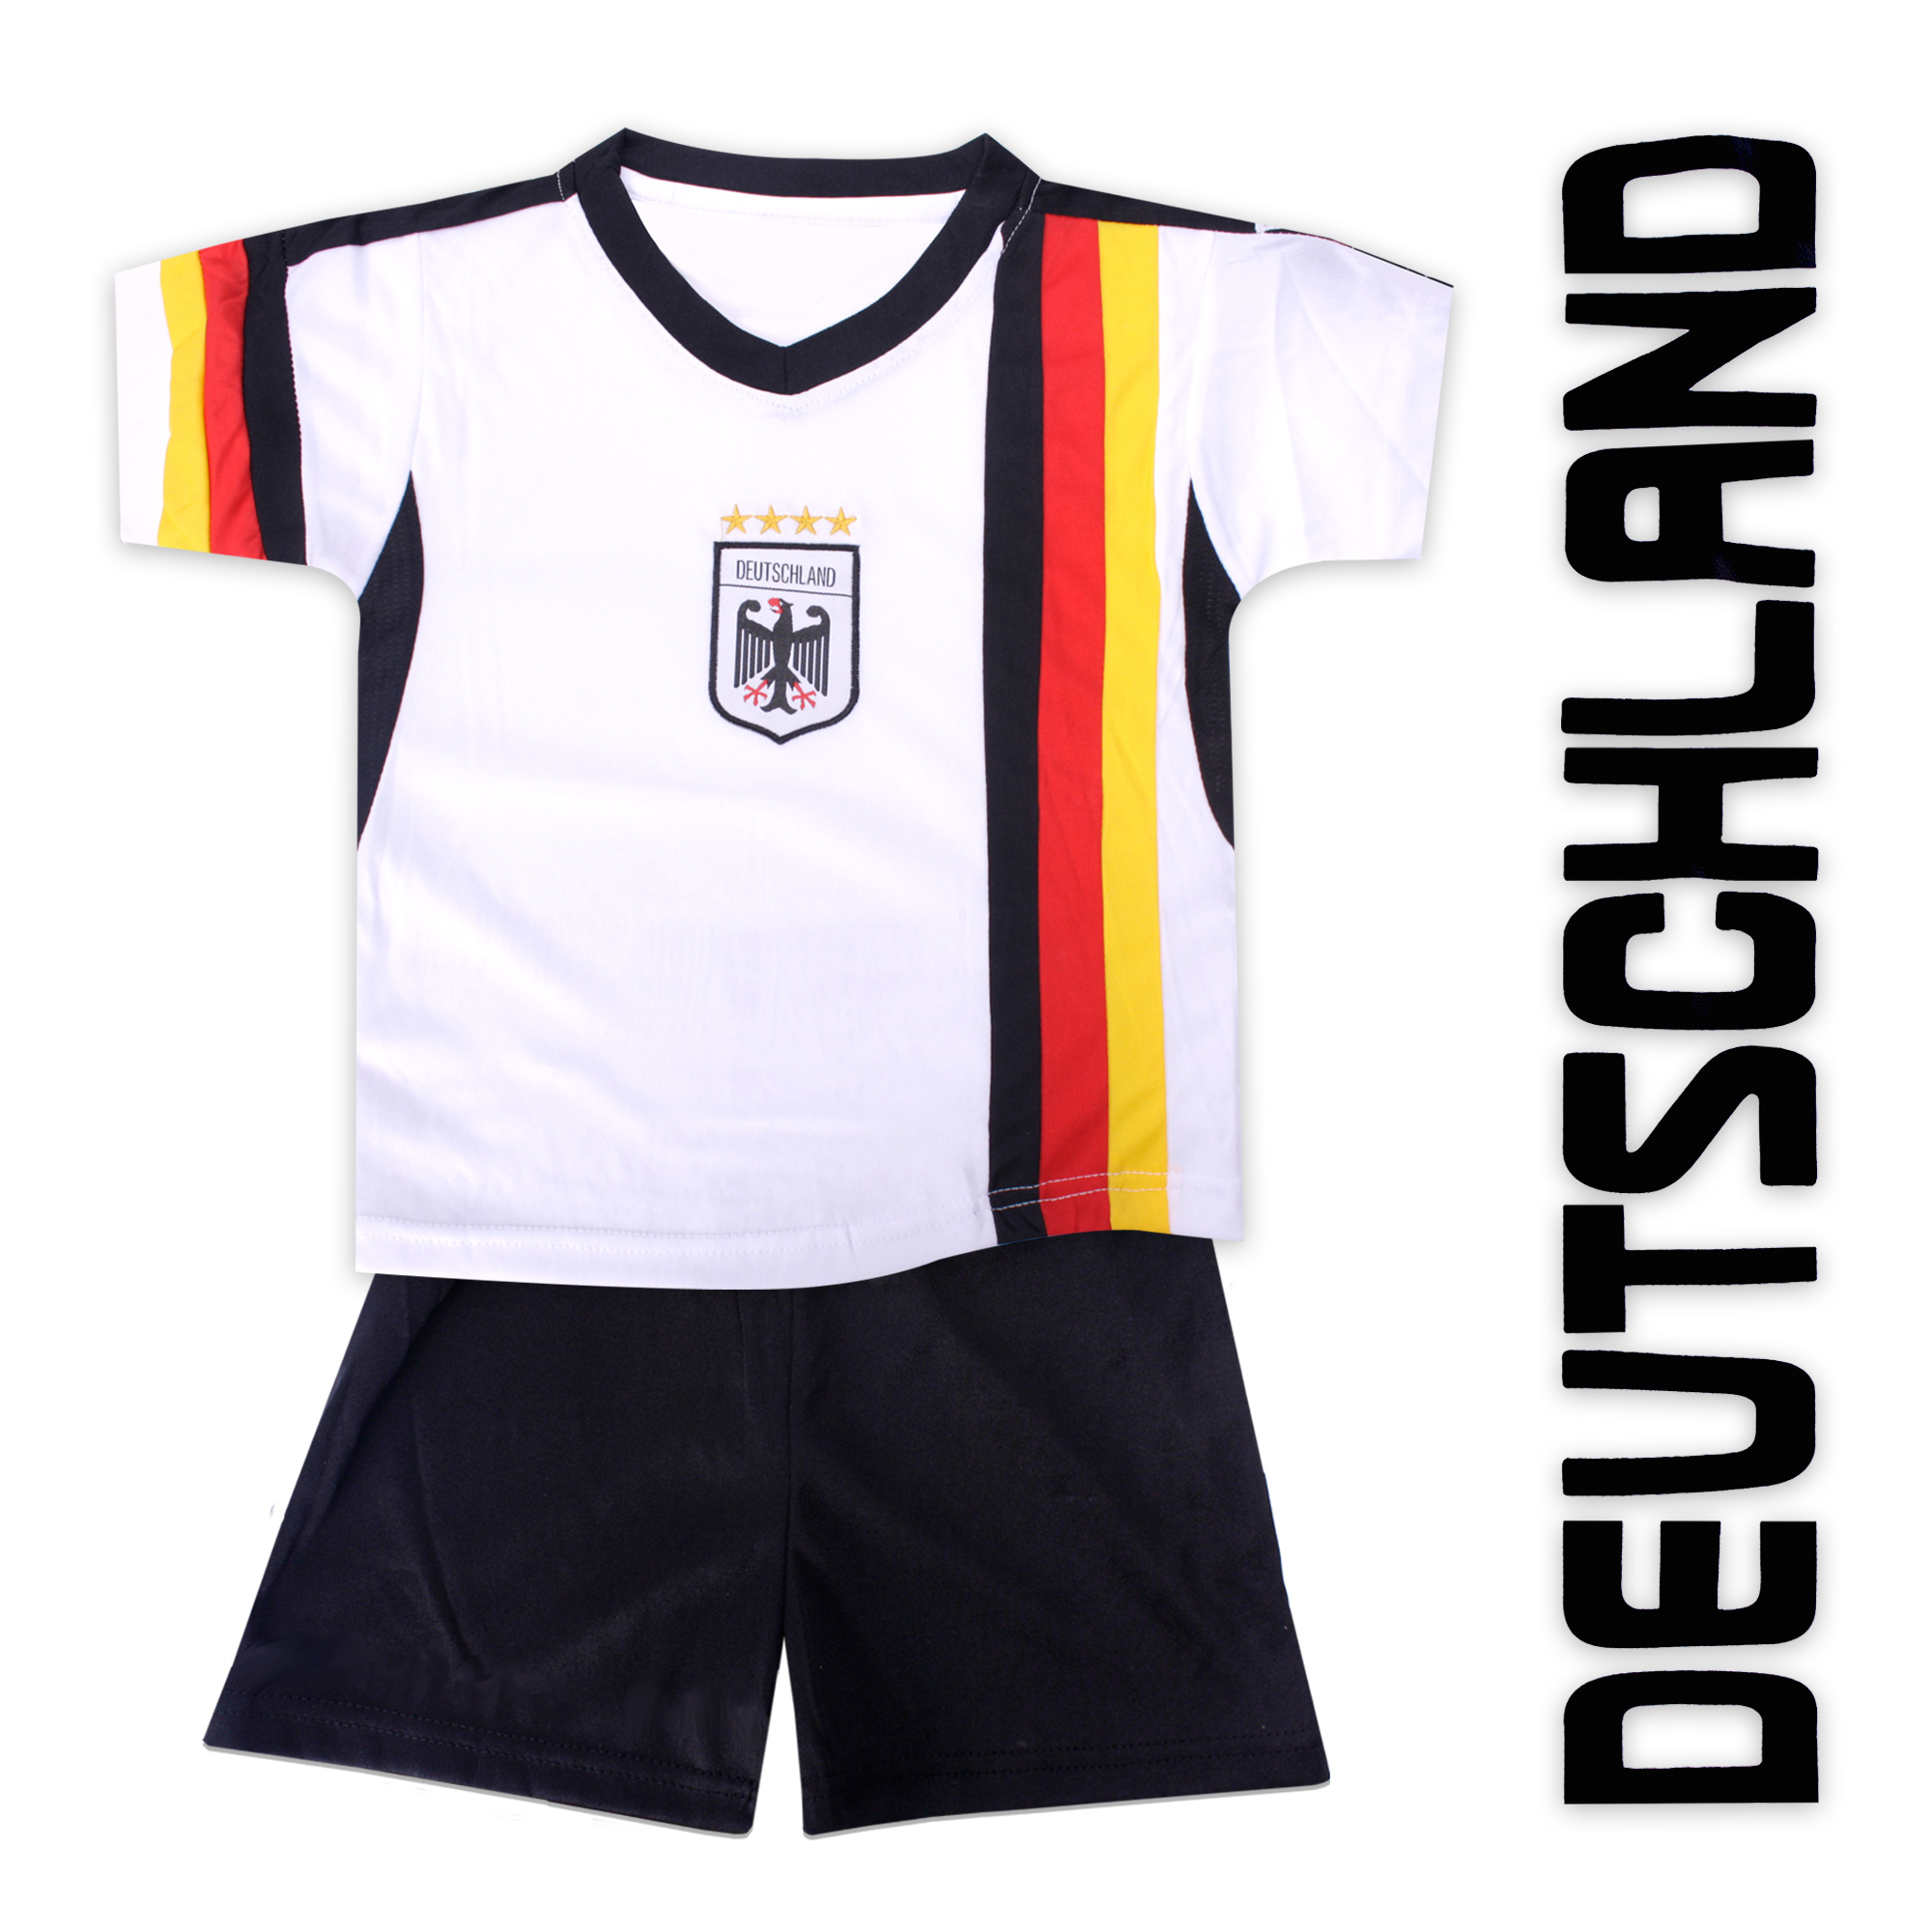 fussball kinder trikot hose deutschland gesticktes. Black Bedroom Furniture Sets. Home Design Ideas